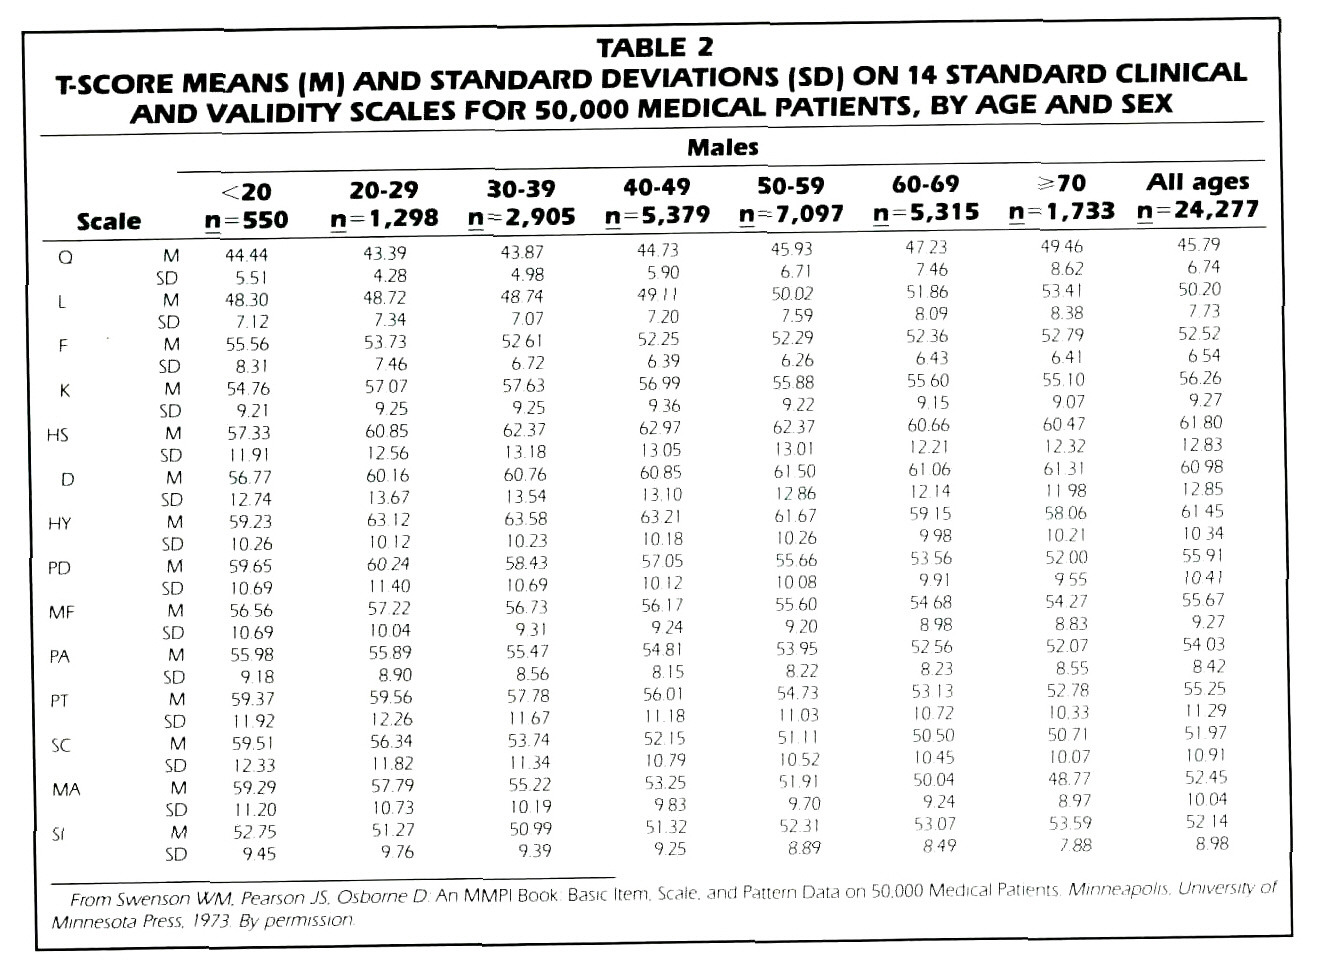 TABLE 2T-SCORE MEANS (M) AND STANDARD DEVIATIONS (SDJ ON 14 STANDARD CLINICAL AND VALIDITY SCALES FOR 50,000 MEDICAL PATIENTS, BY AGE AND SEX